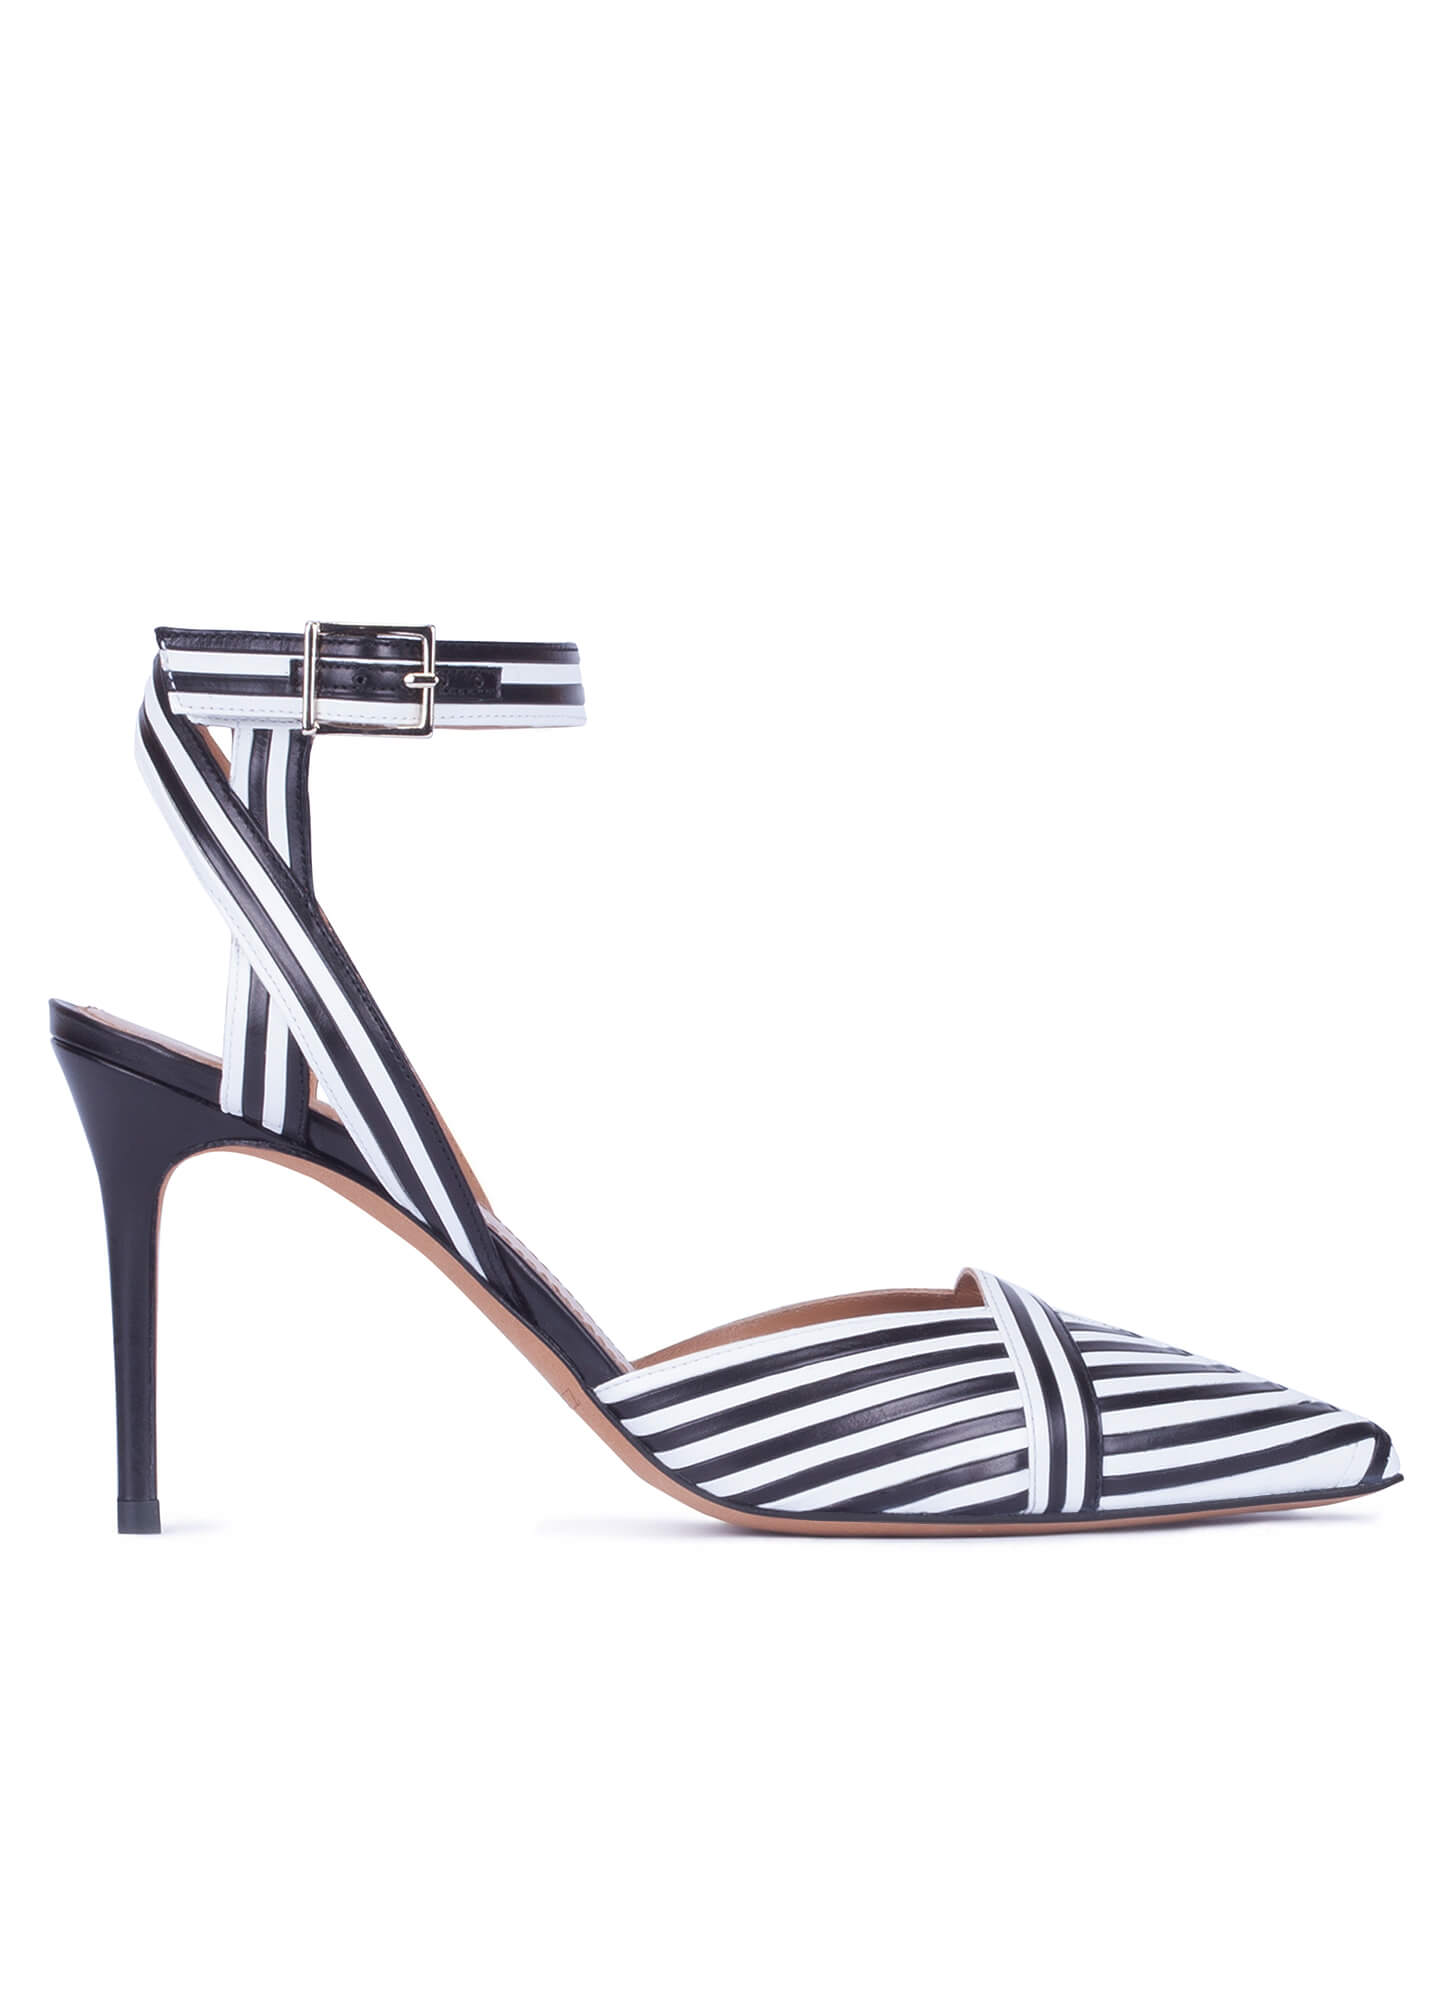 3e80345e23 Striped slingback high heel shoe in black and white leather . PURA LOPEZ